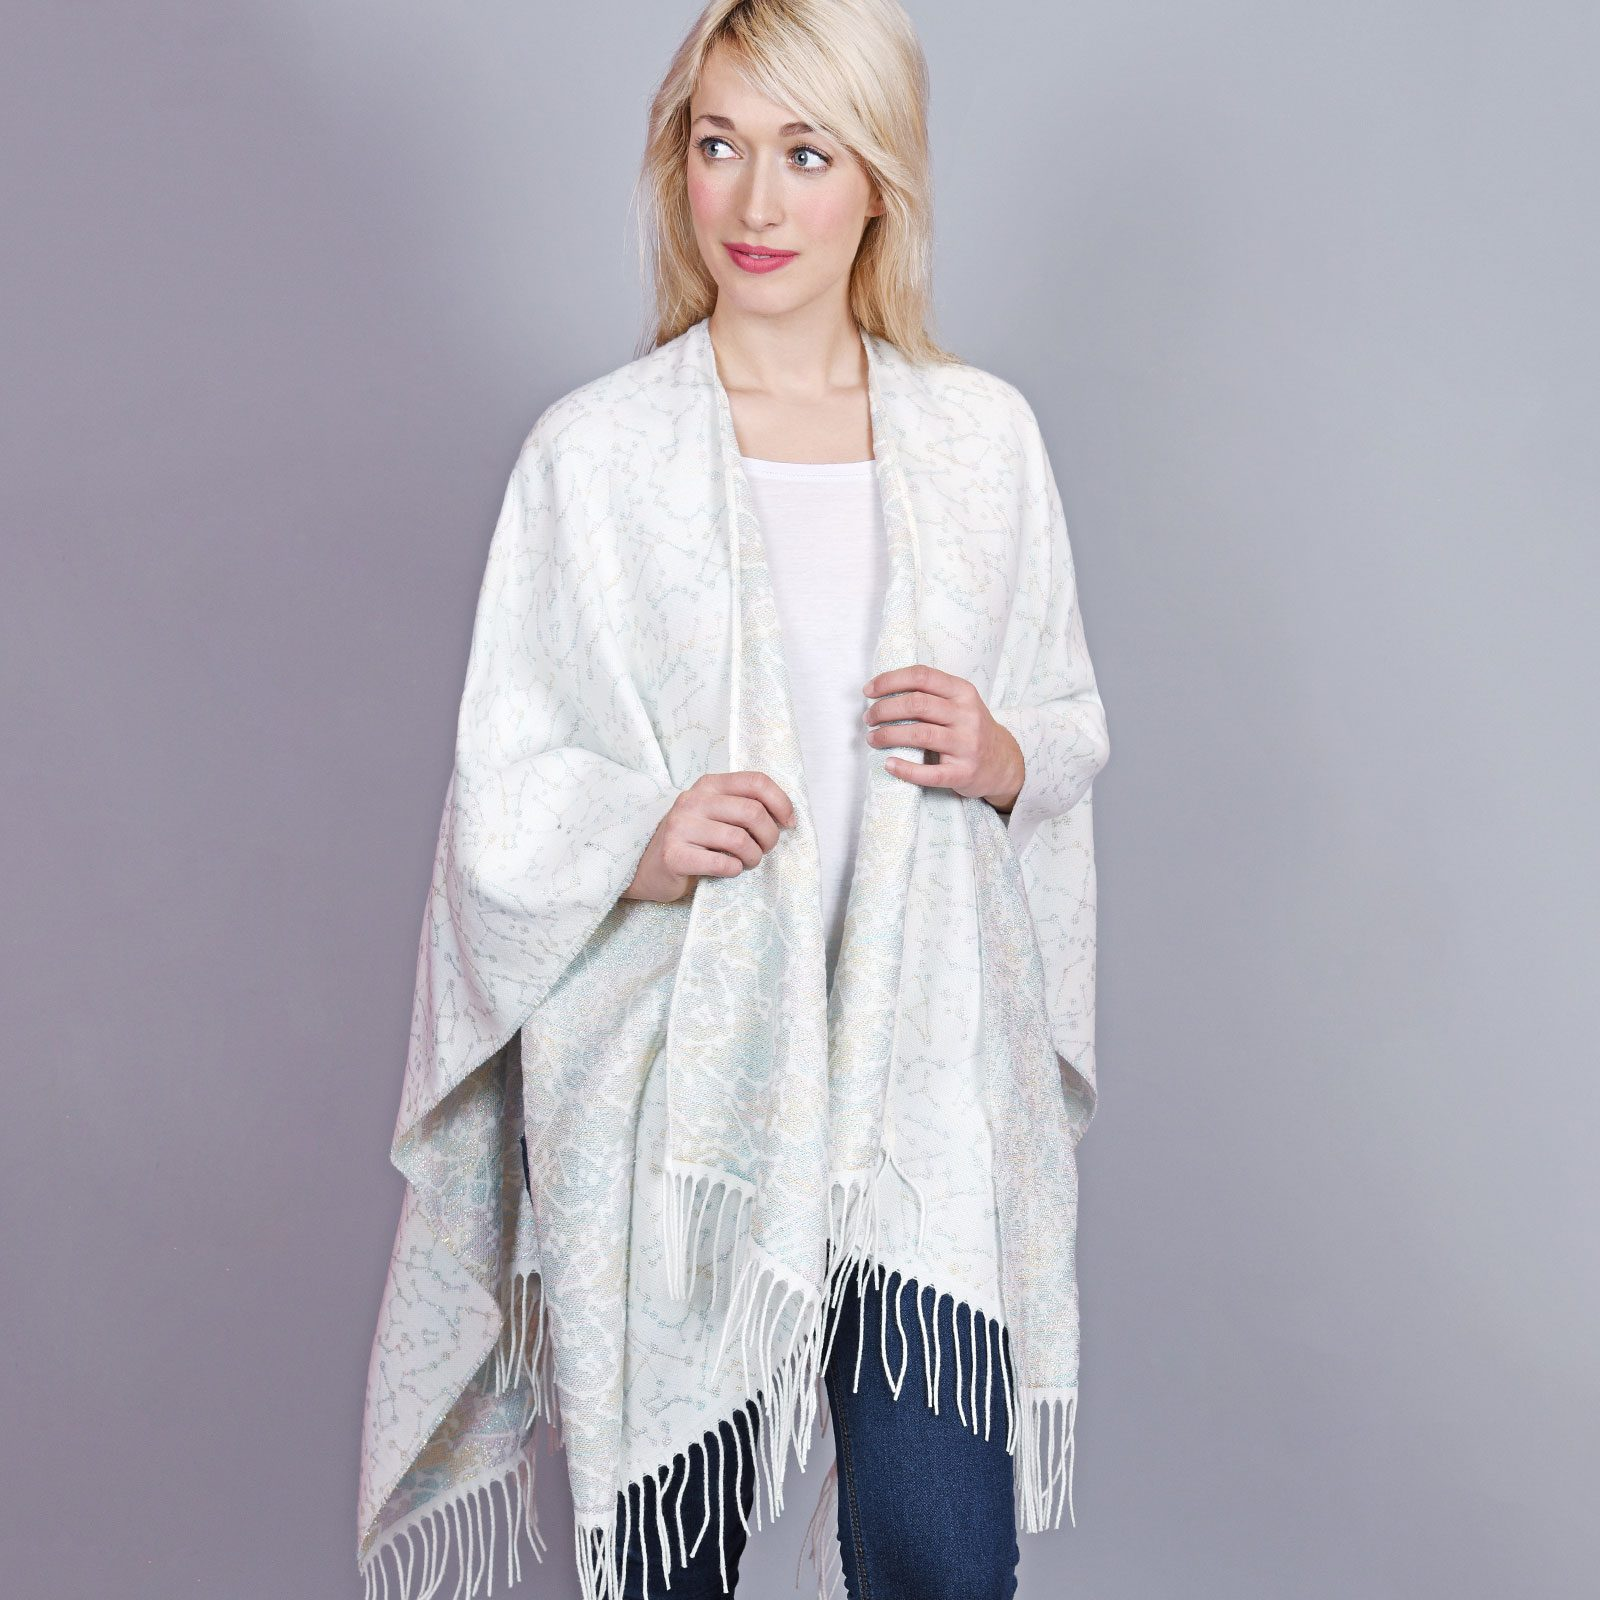 http://lookbook.allee-du-foulard.fr/wp-content/uploads/2019/01/AT-04448-VF16-1-poncho-femme-blanc-motifs-relief-1600x1600.jpg